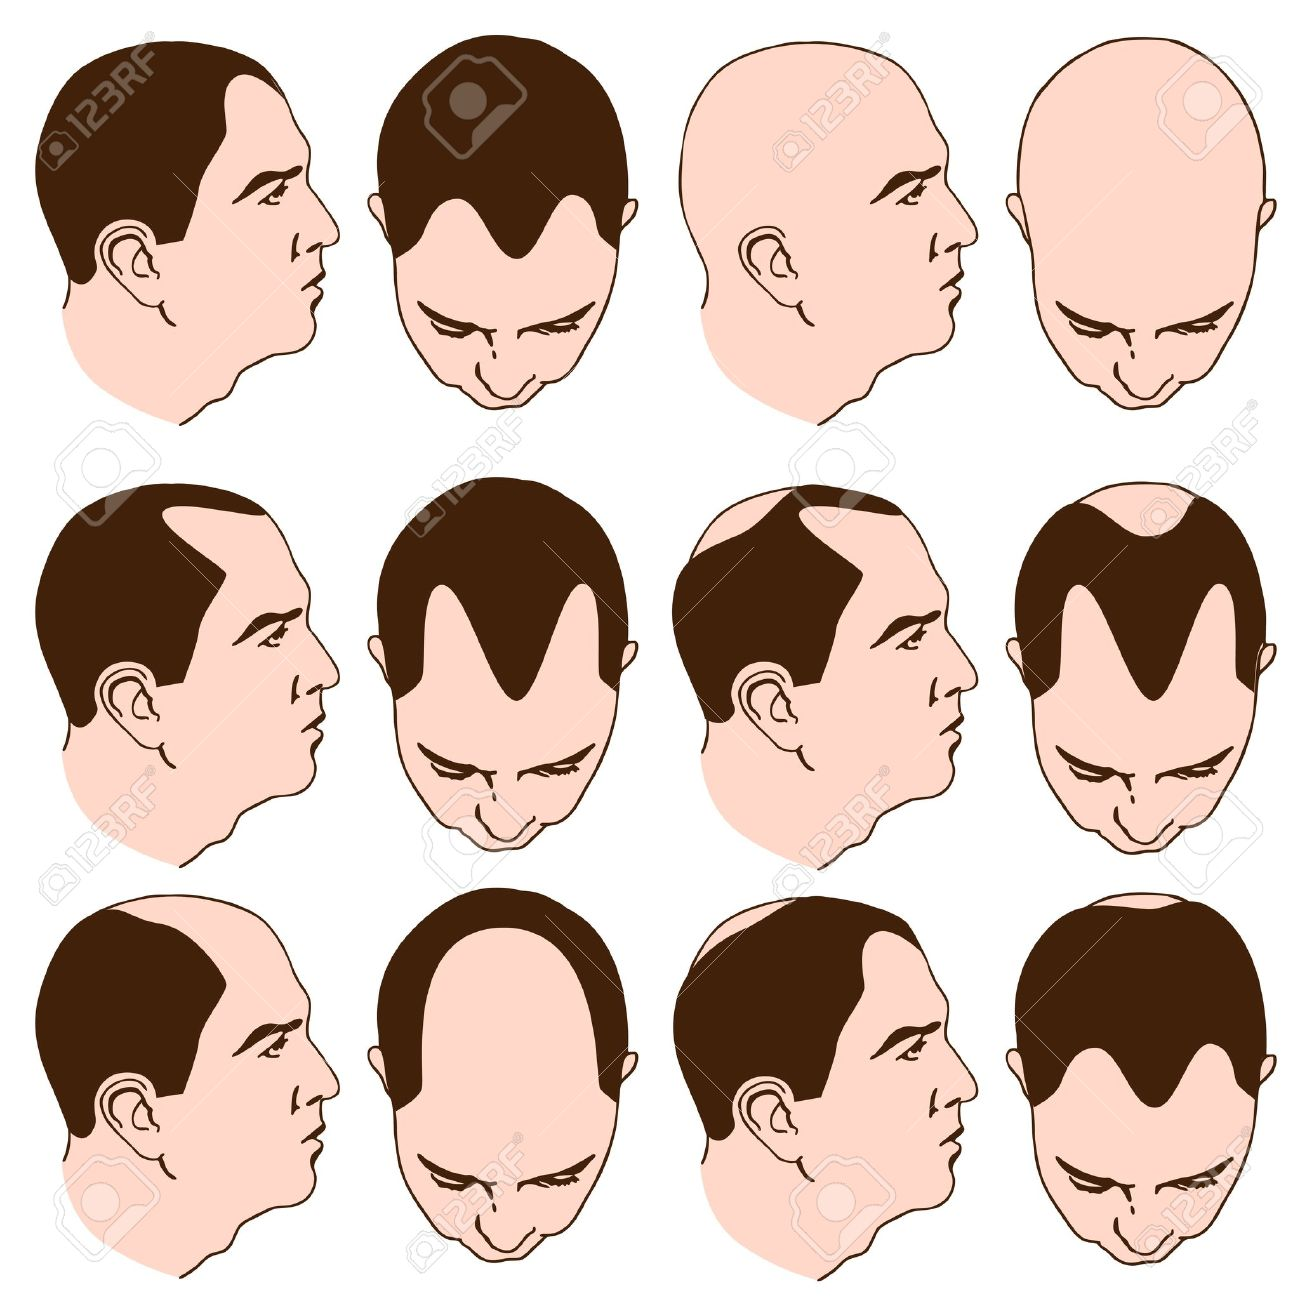 An image of man with various receding hairlines. Stock Vector - 9163134